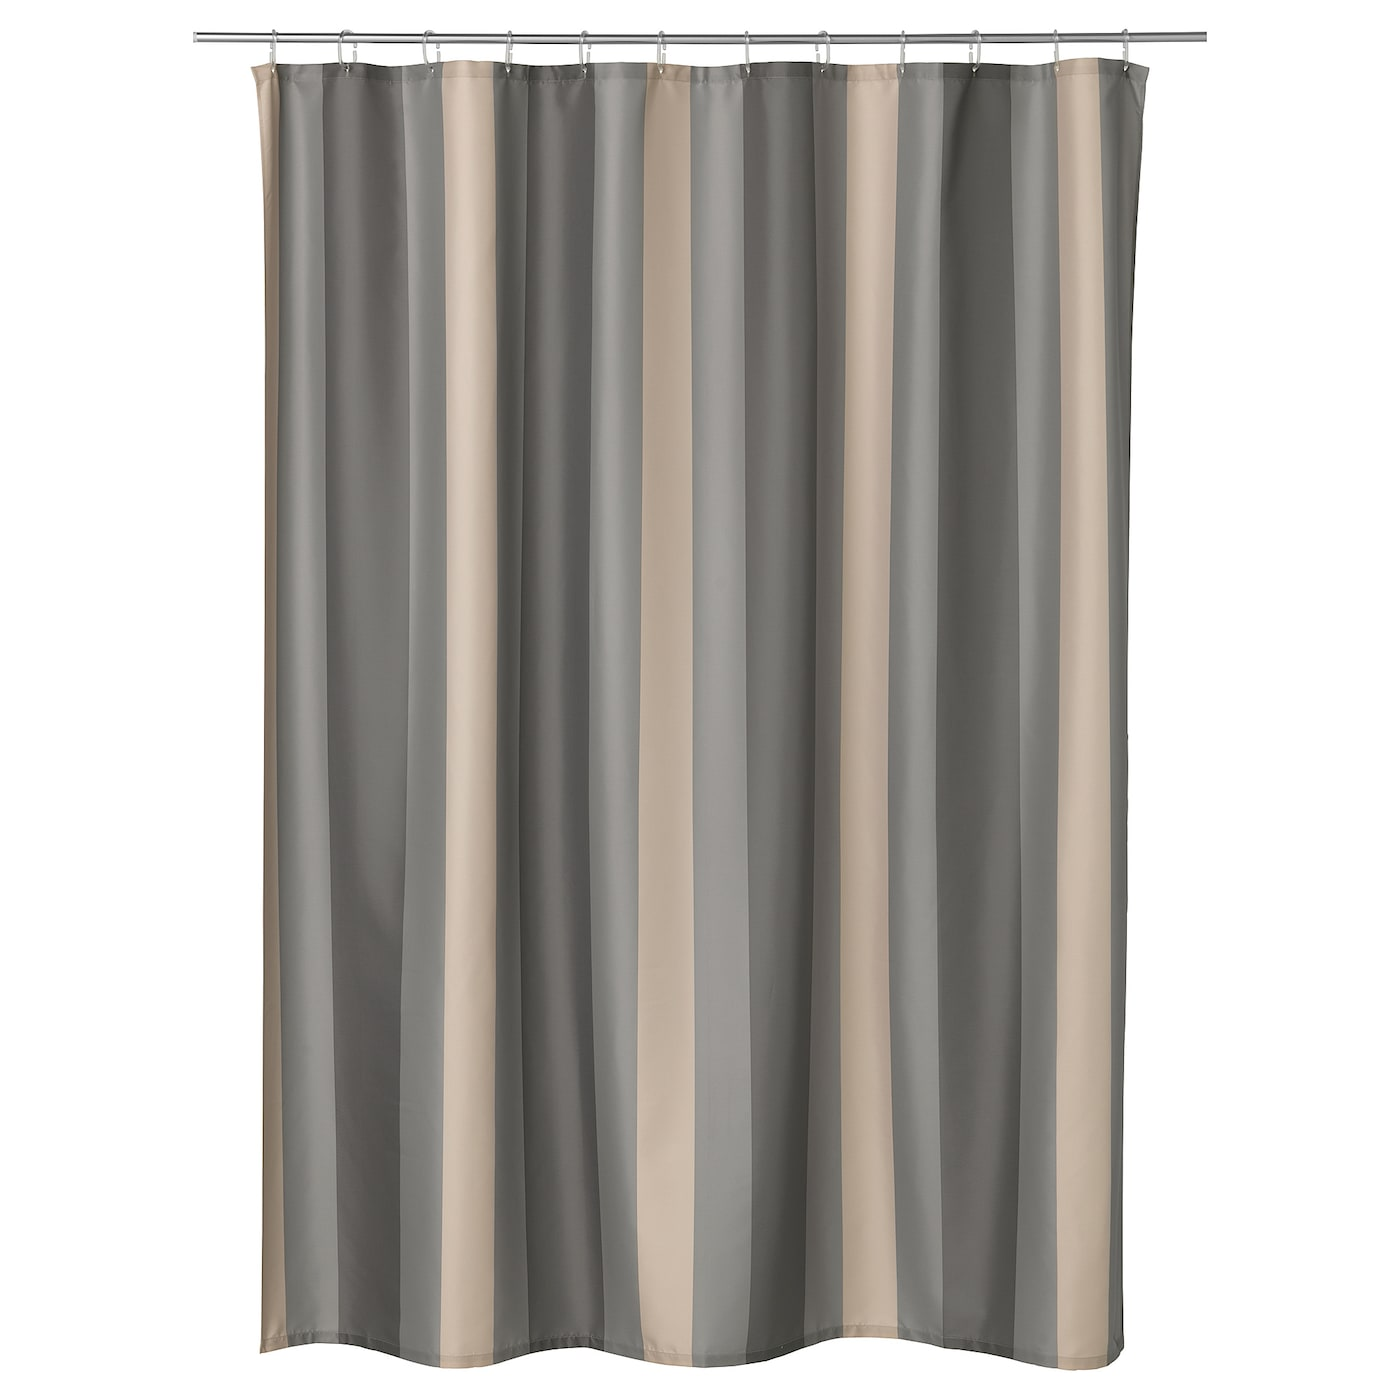 charcoal curtains products shower lush decor fox curtain com lushdecor gray pixie fashion pink